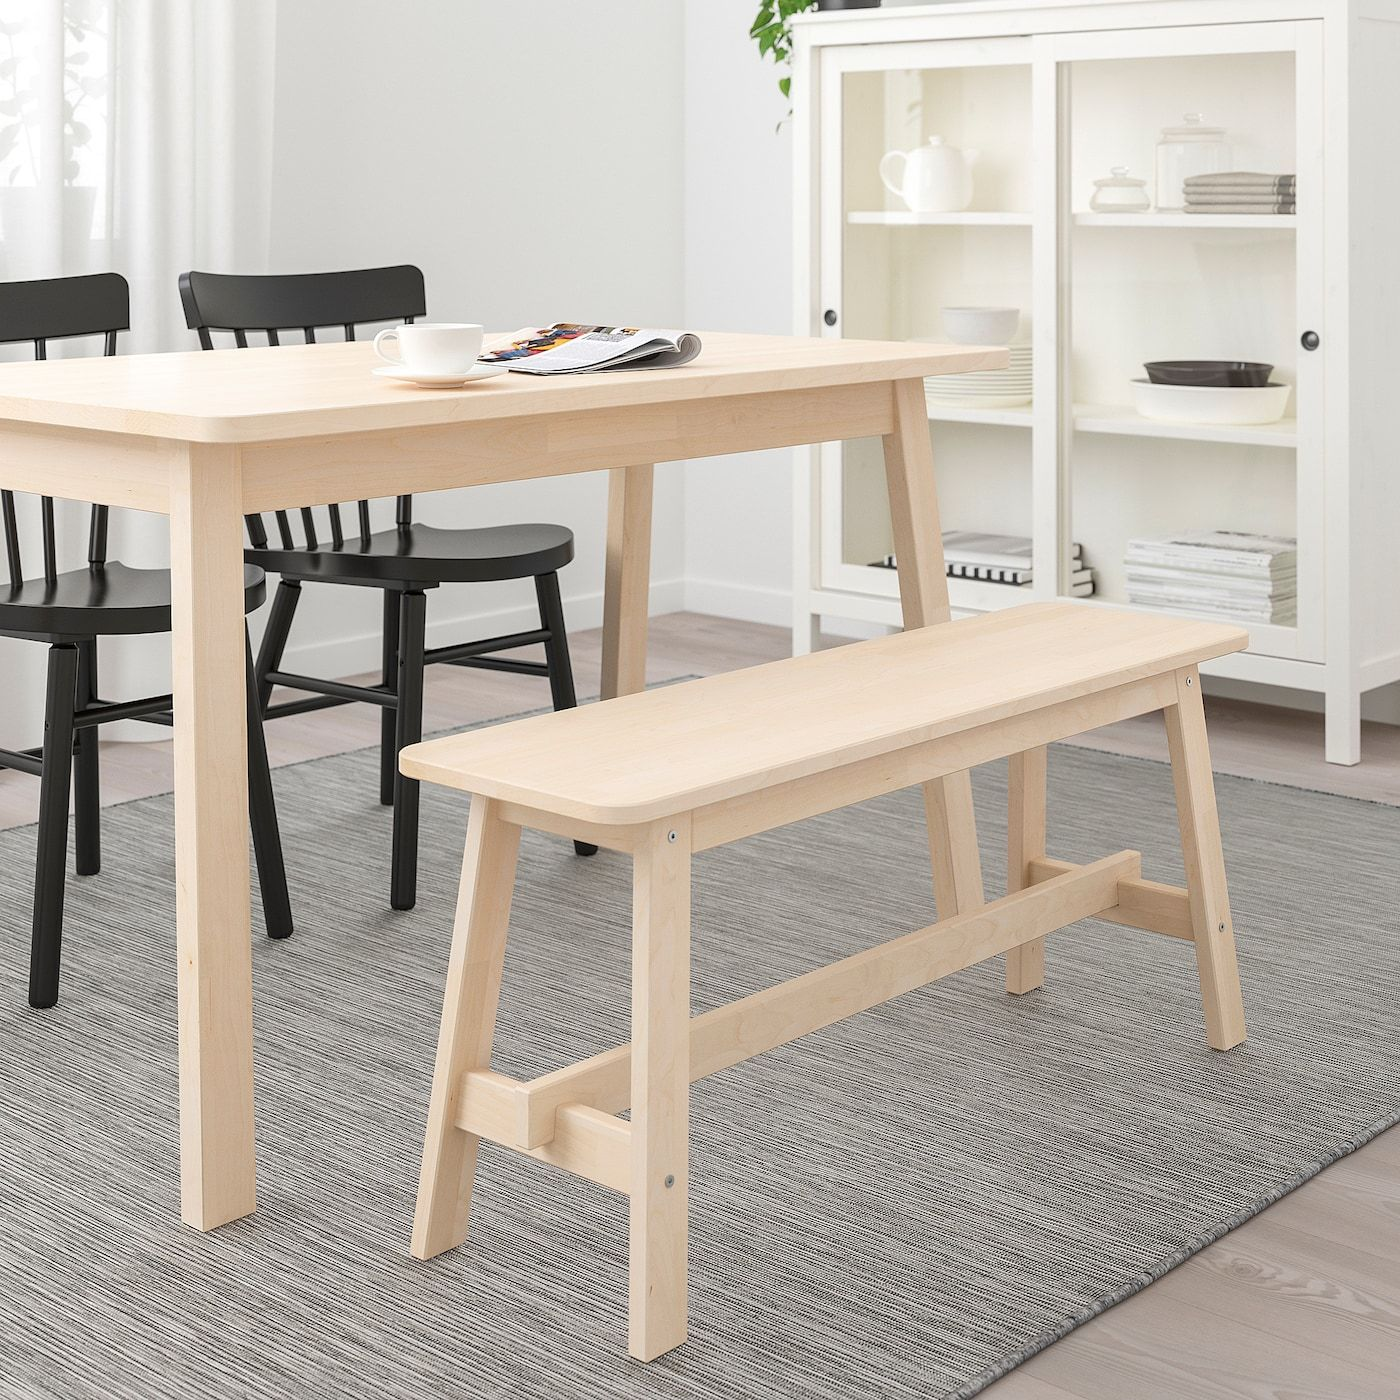 Norraker Bench Birch 40 1 2 In 2020 Ikea Furniture Bench